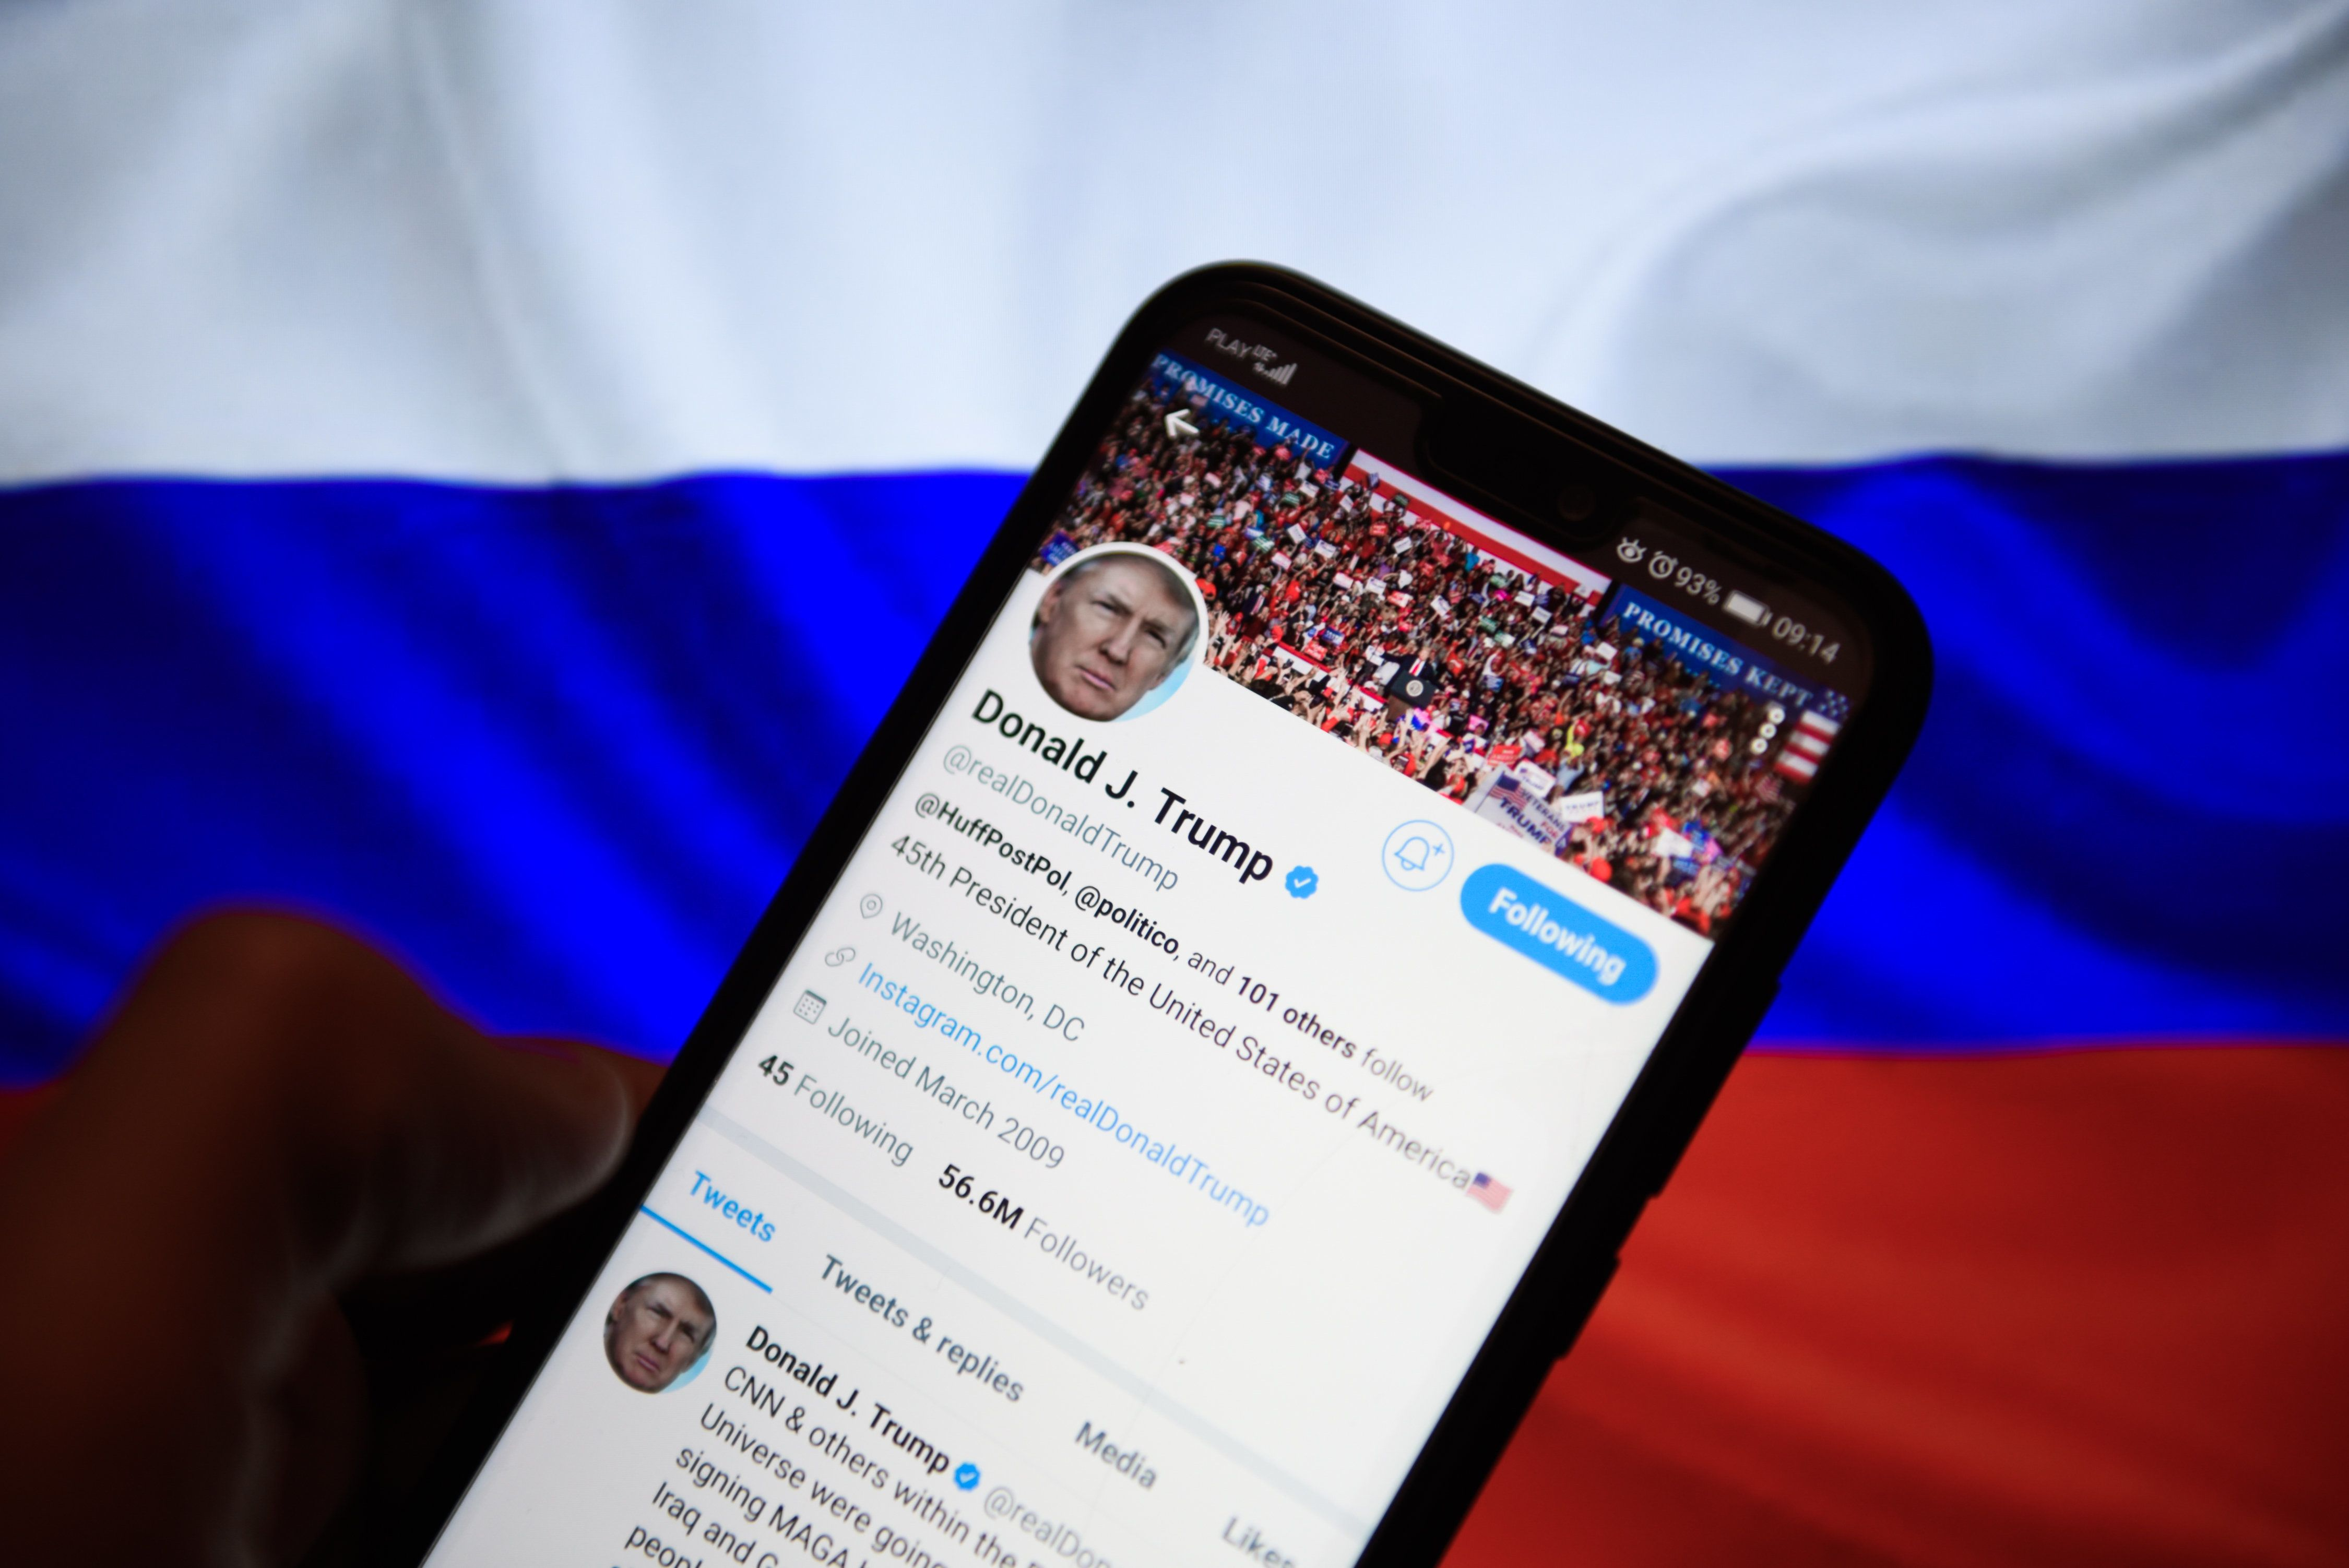 KRAKOW, POLAND - 2018/12/28: The real Donald Trump twitter account  is seen on an android mobile phone. (Photo by Omar Marques/SOPA Images/LightRocket via Getty Images)